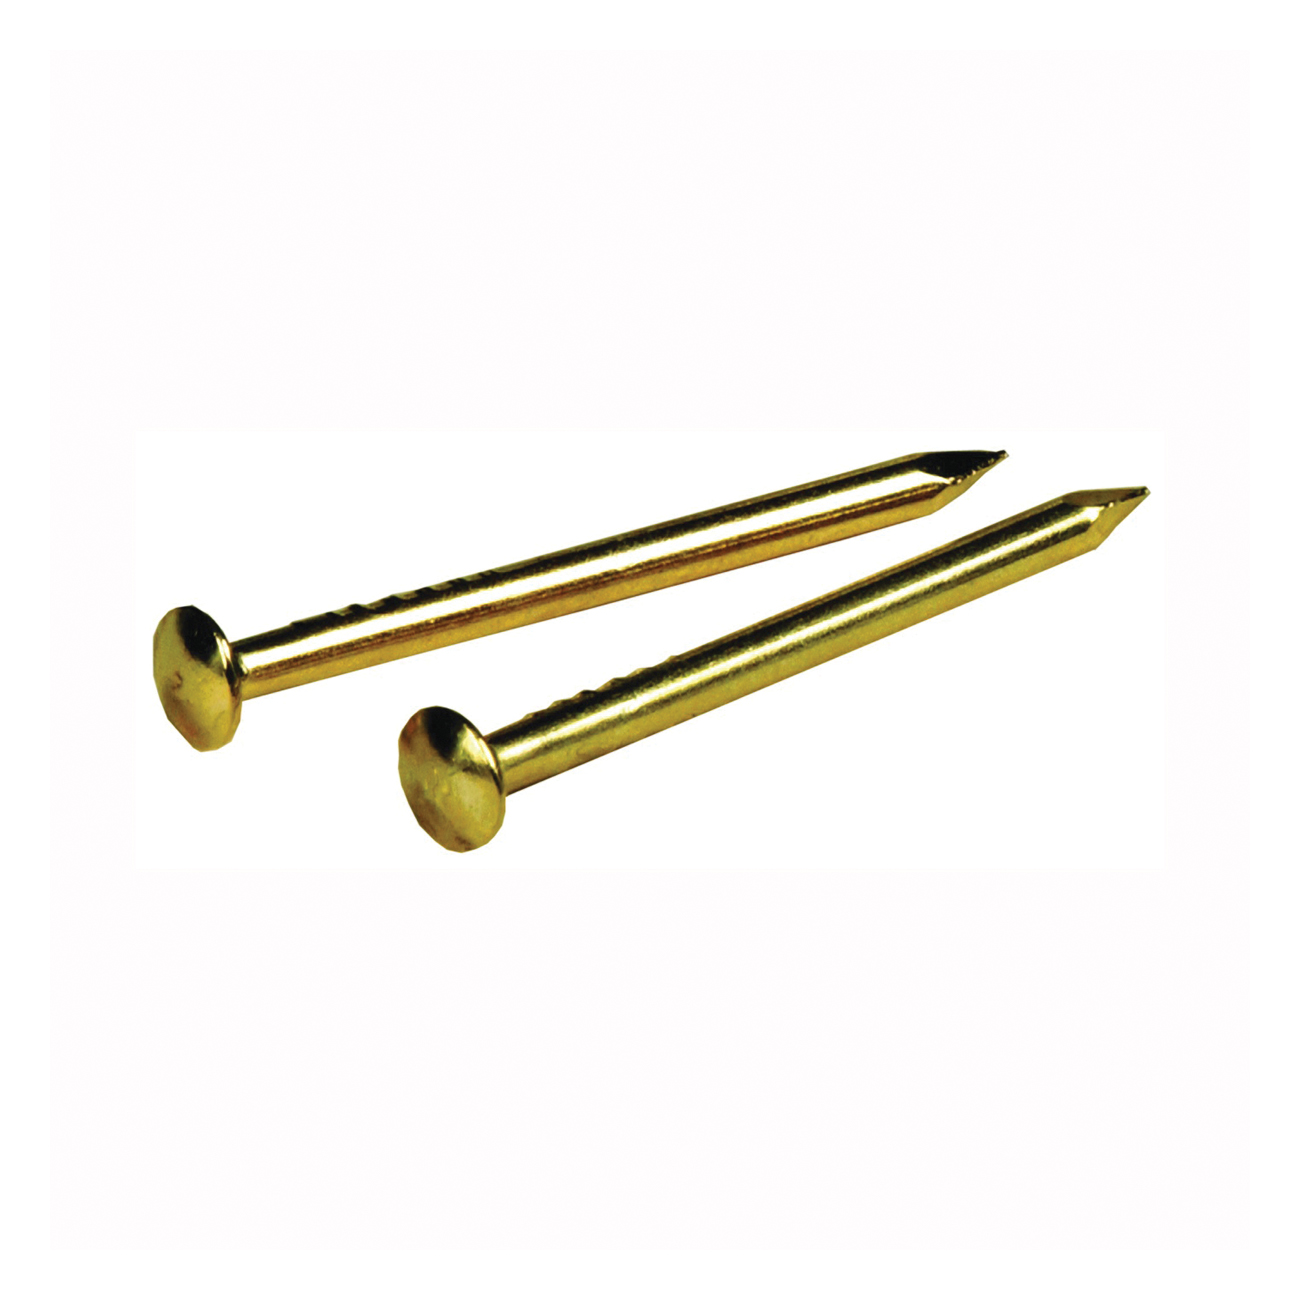 Picture of HILLMAN 122619 Escutcheon Pin, 5/8 in L, Steel, Brass